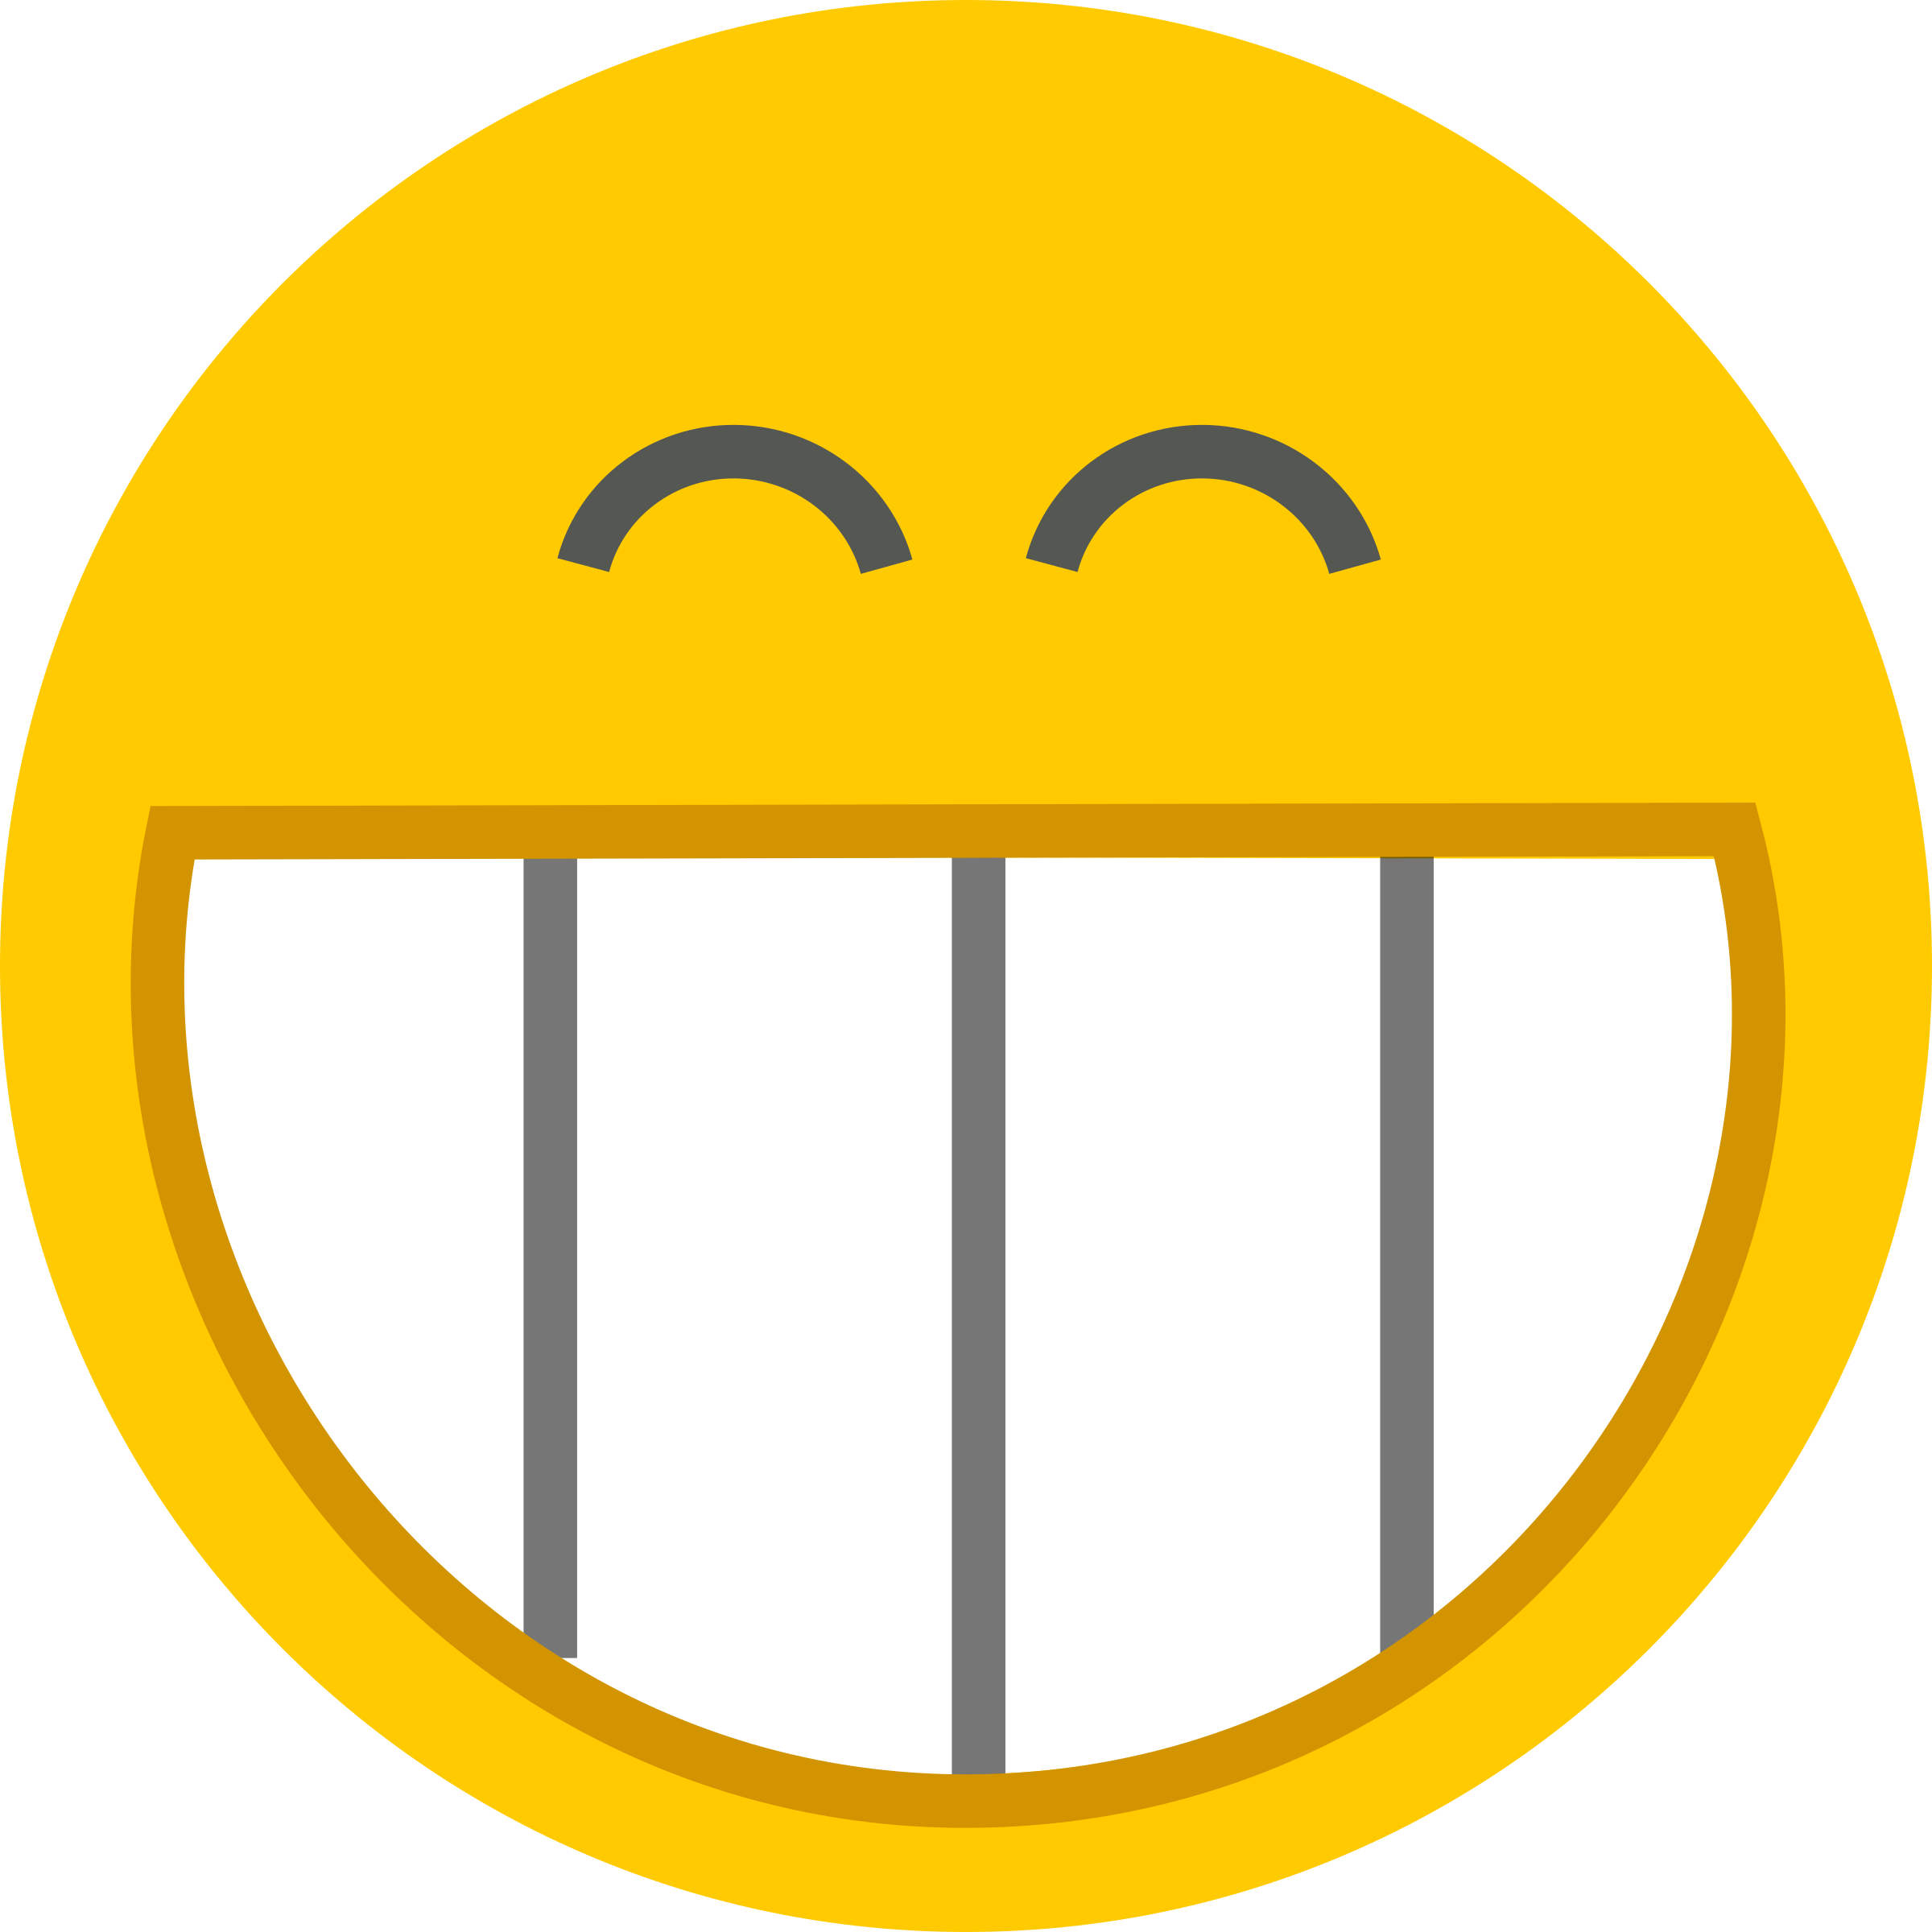 Smile clipart free clipart images 4 image.